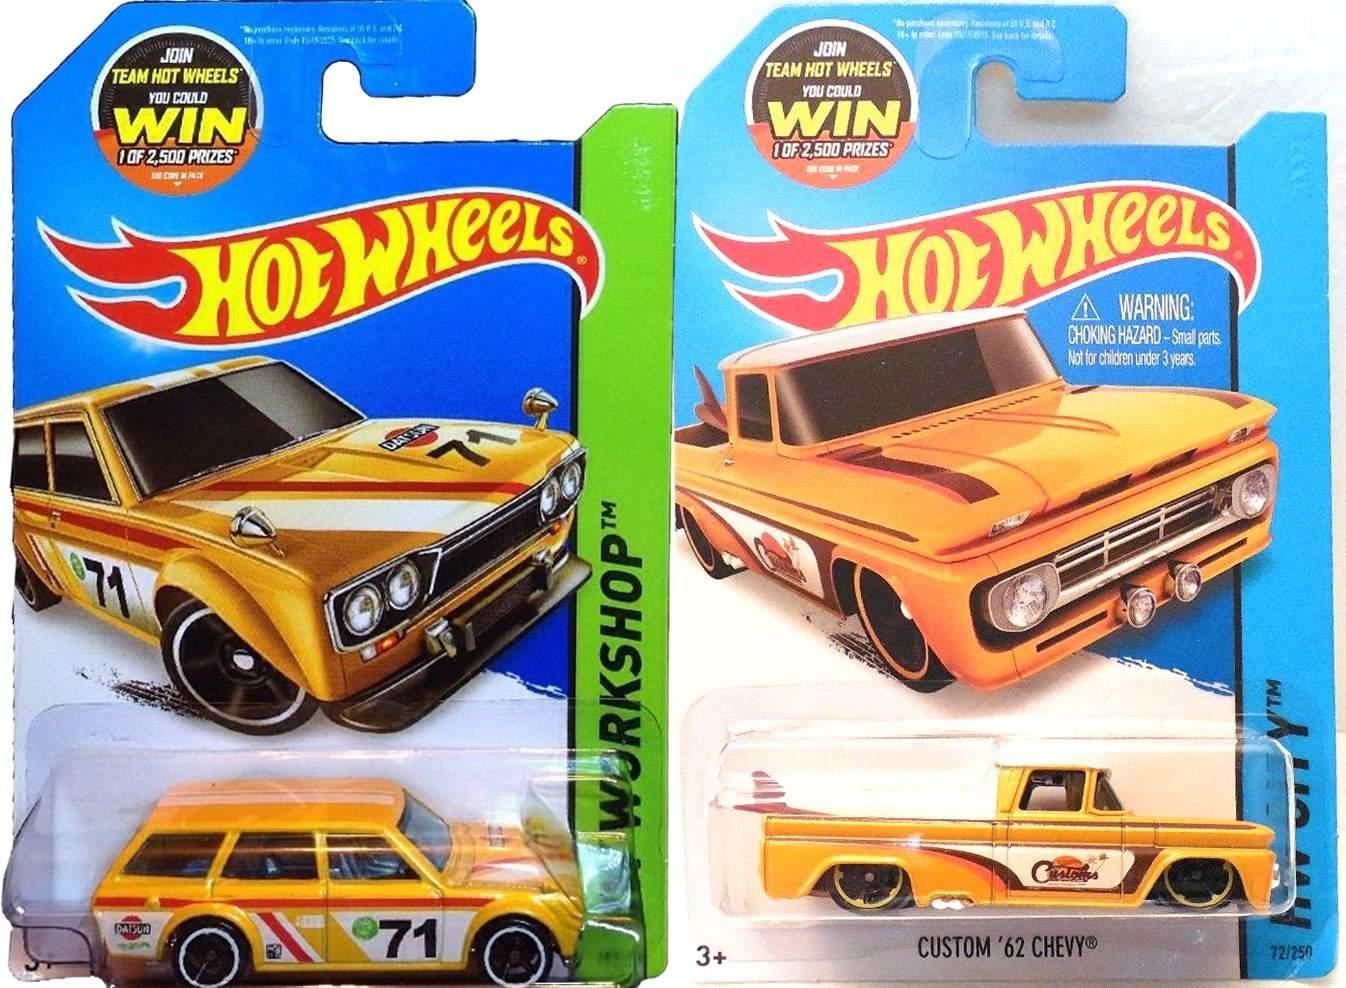 Buy Summer Yellow Hot Wheels Truck Amp Wagon Set Datsun Bluebird 510 Amp Custom 62 Chevy Hot Wheels Hw Cit Features Price Reviews Online In India Justdial